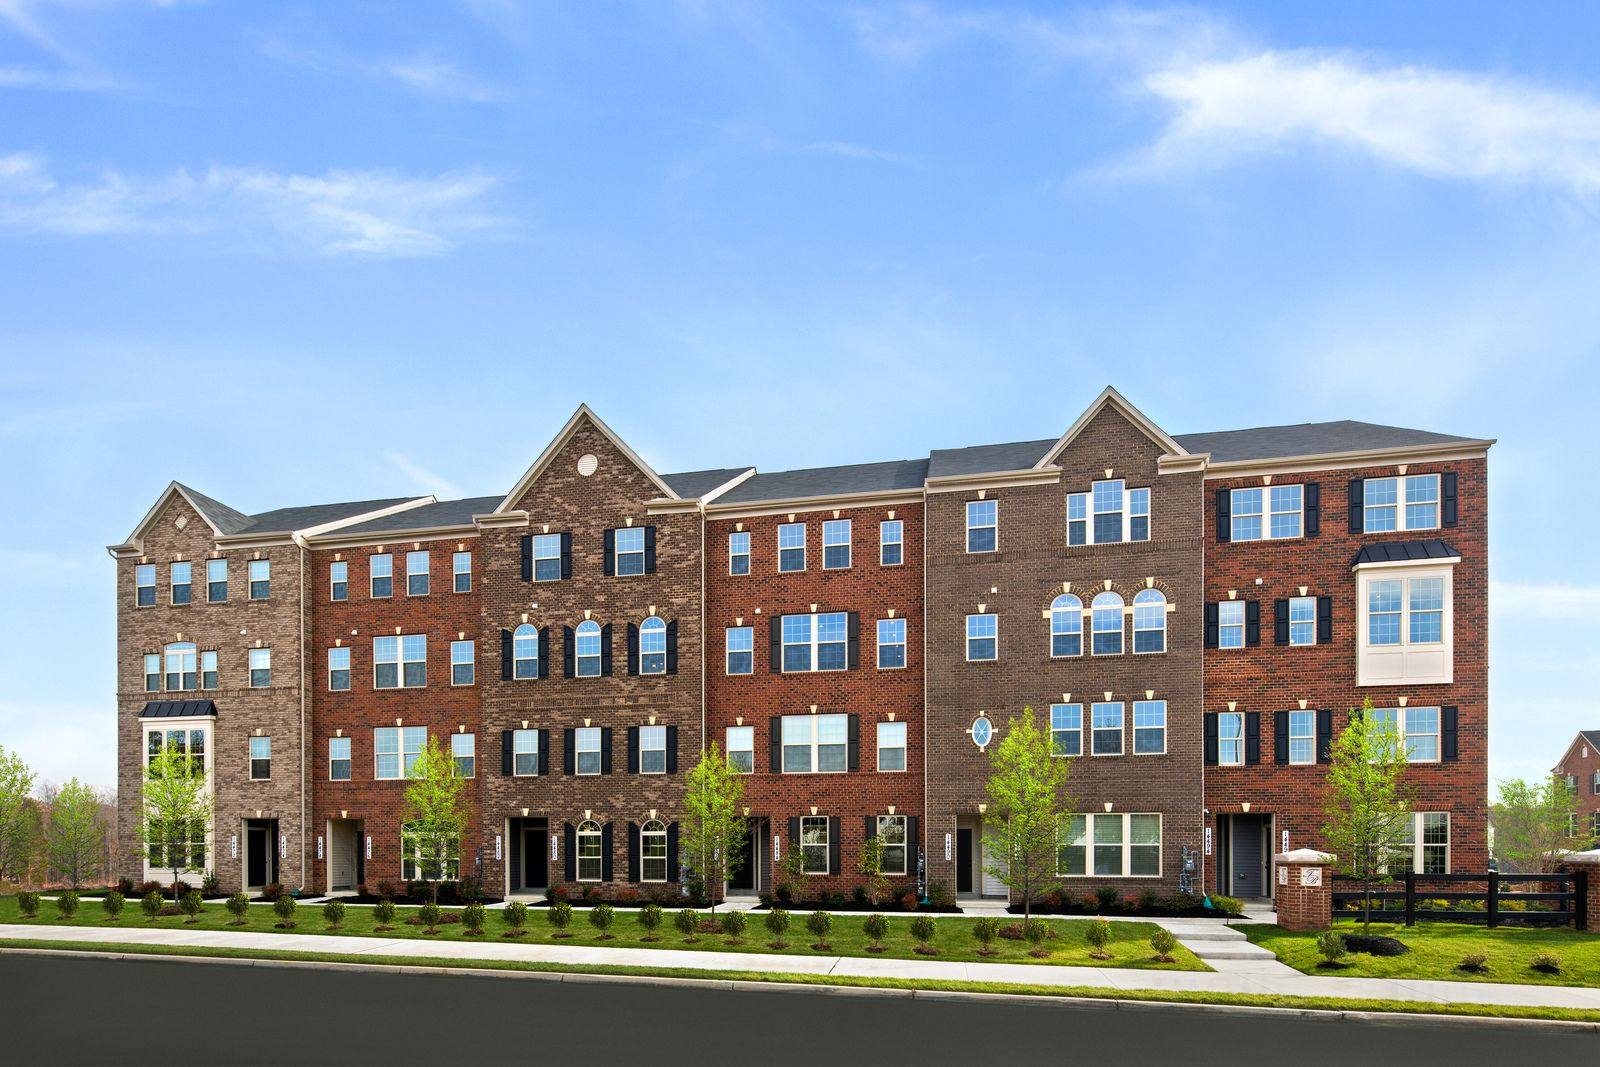 WELCOME TO TIMOTHY BRANCH IN BRANDYWINE, MD